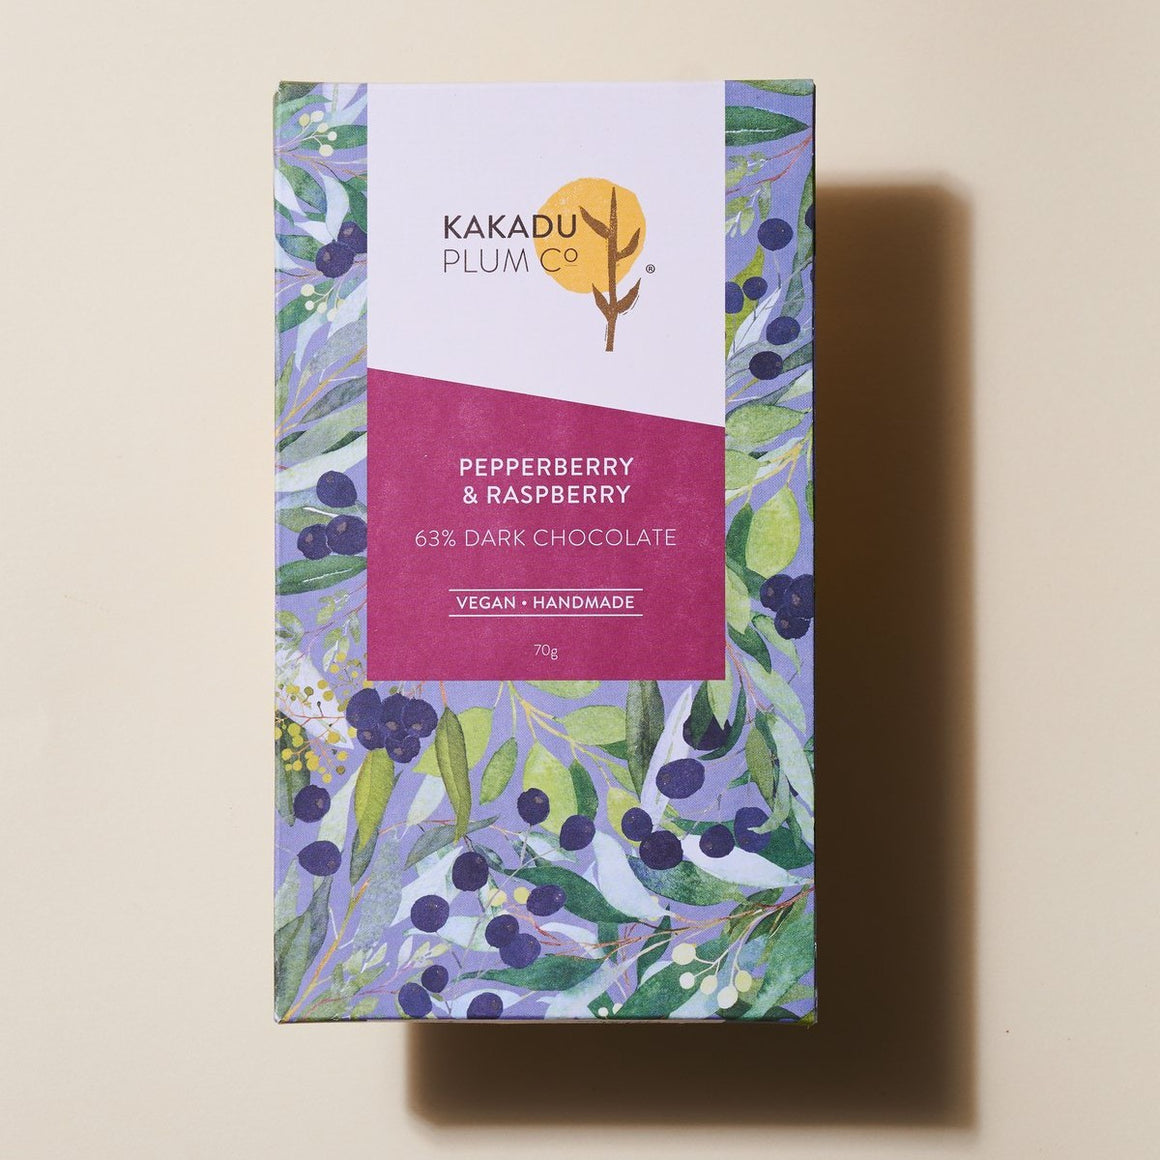 A Chocolate bar wrapped in paper with a print of Pepperberry plant. The Label reads Pepperberry & Raspberry, 63% Dark Chocolate, Vegan, Handmade, 70g